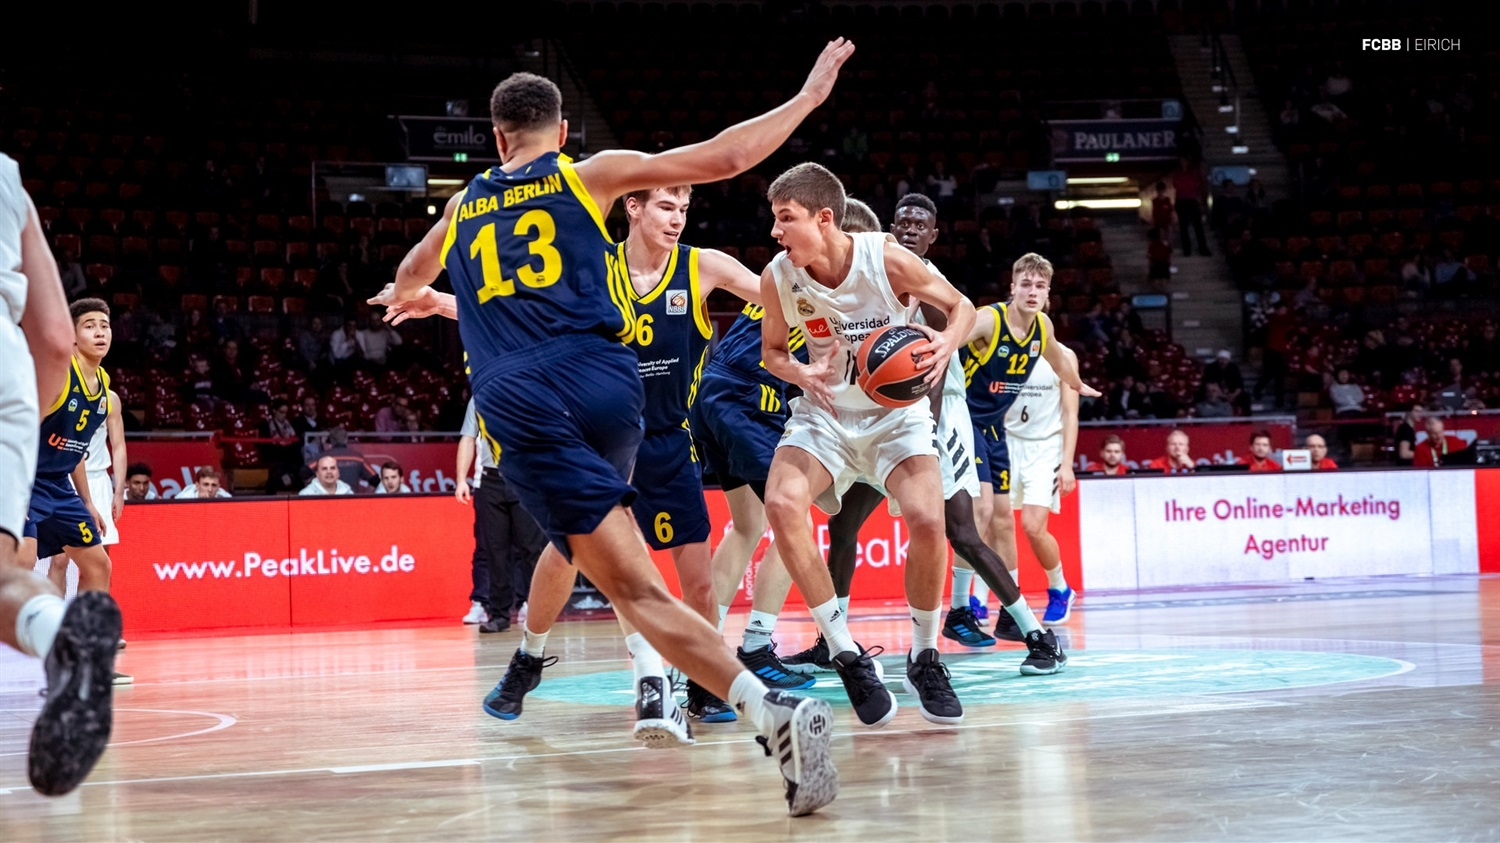 Boris Tisma - U18 Real Madrid - ANGT Munich 2019 (photo FCBB - Eirich) JT18